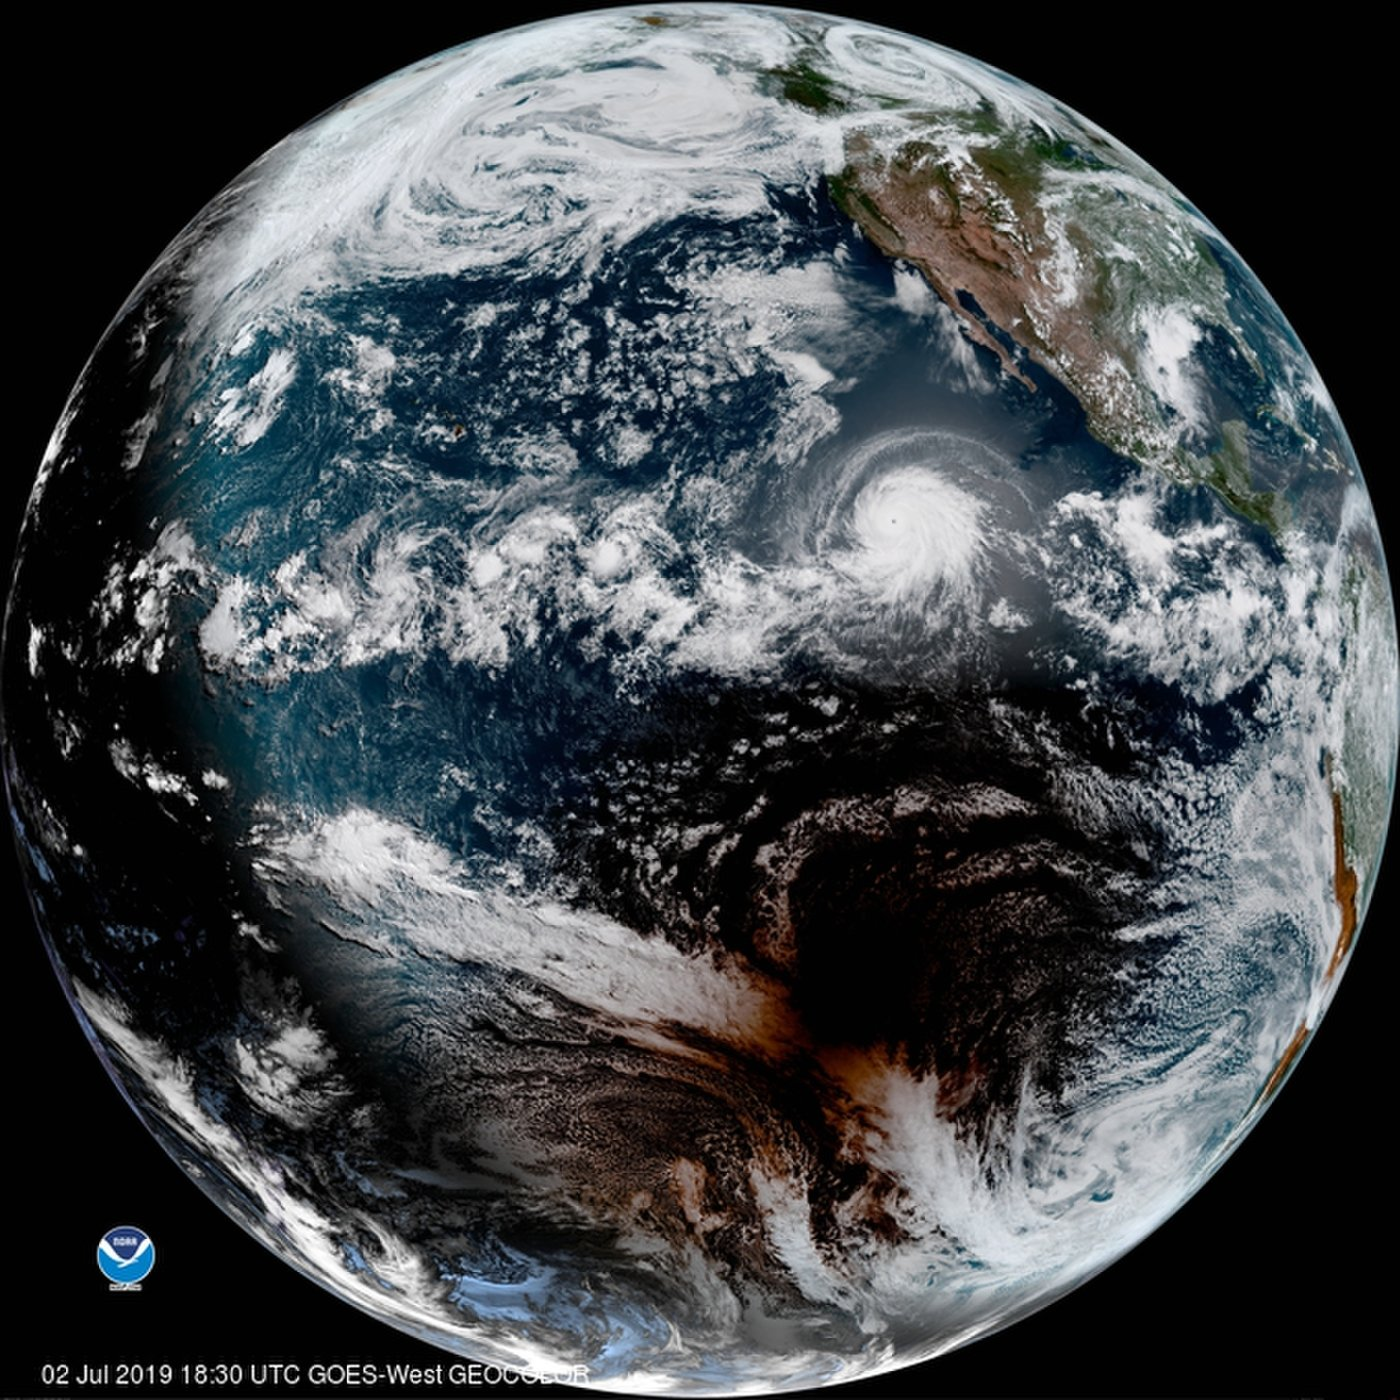 photo: GOES West;desc: National Oceanic and Atmospheric Administration (NOAA) & NASA;